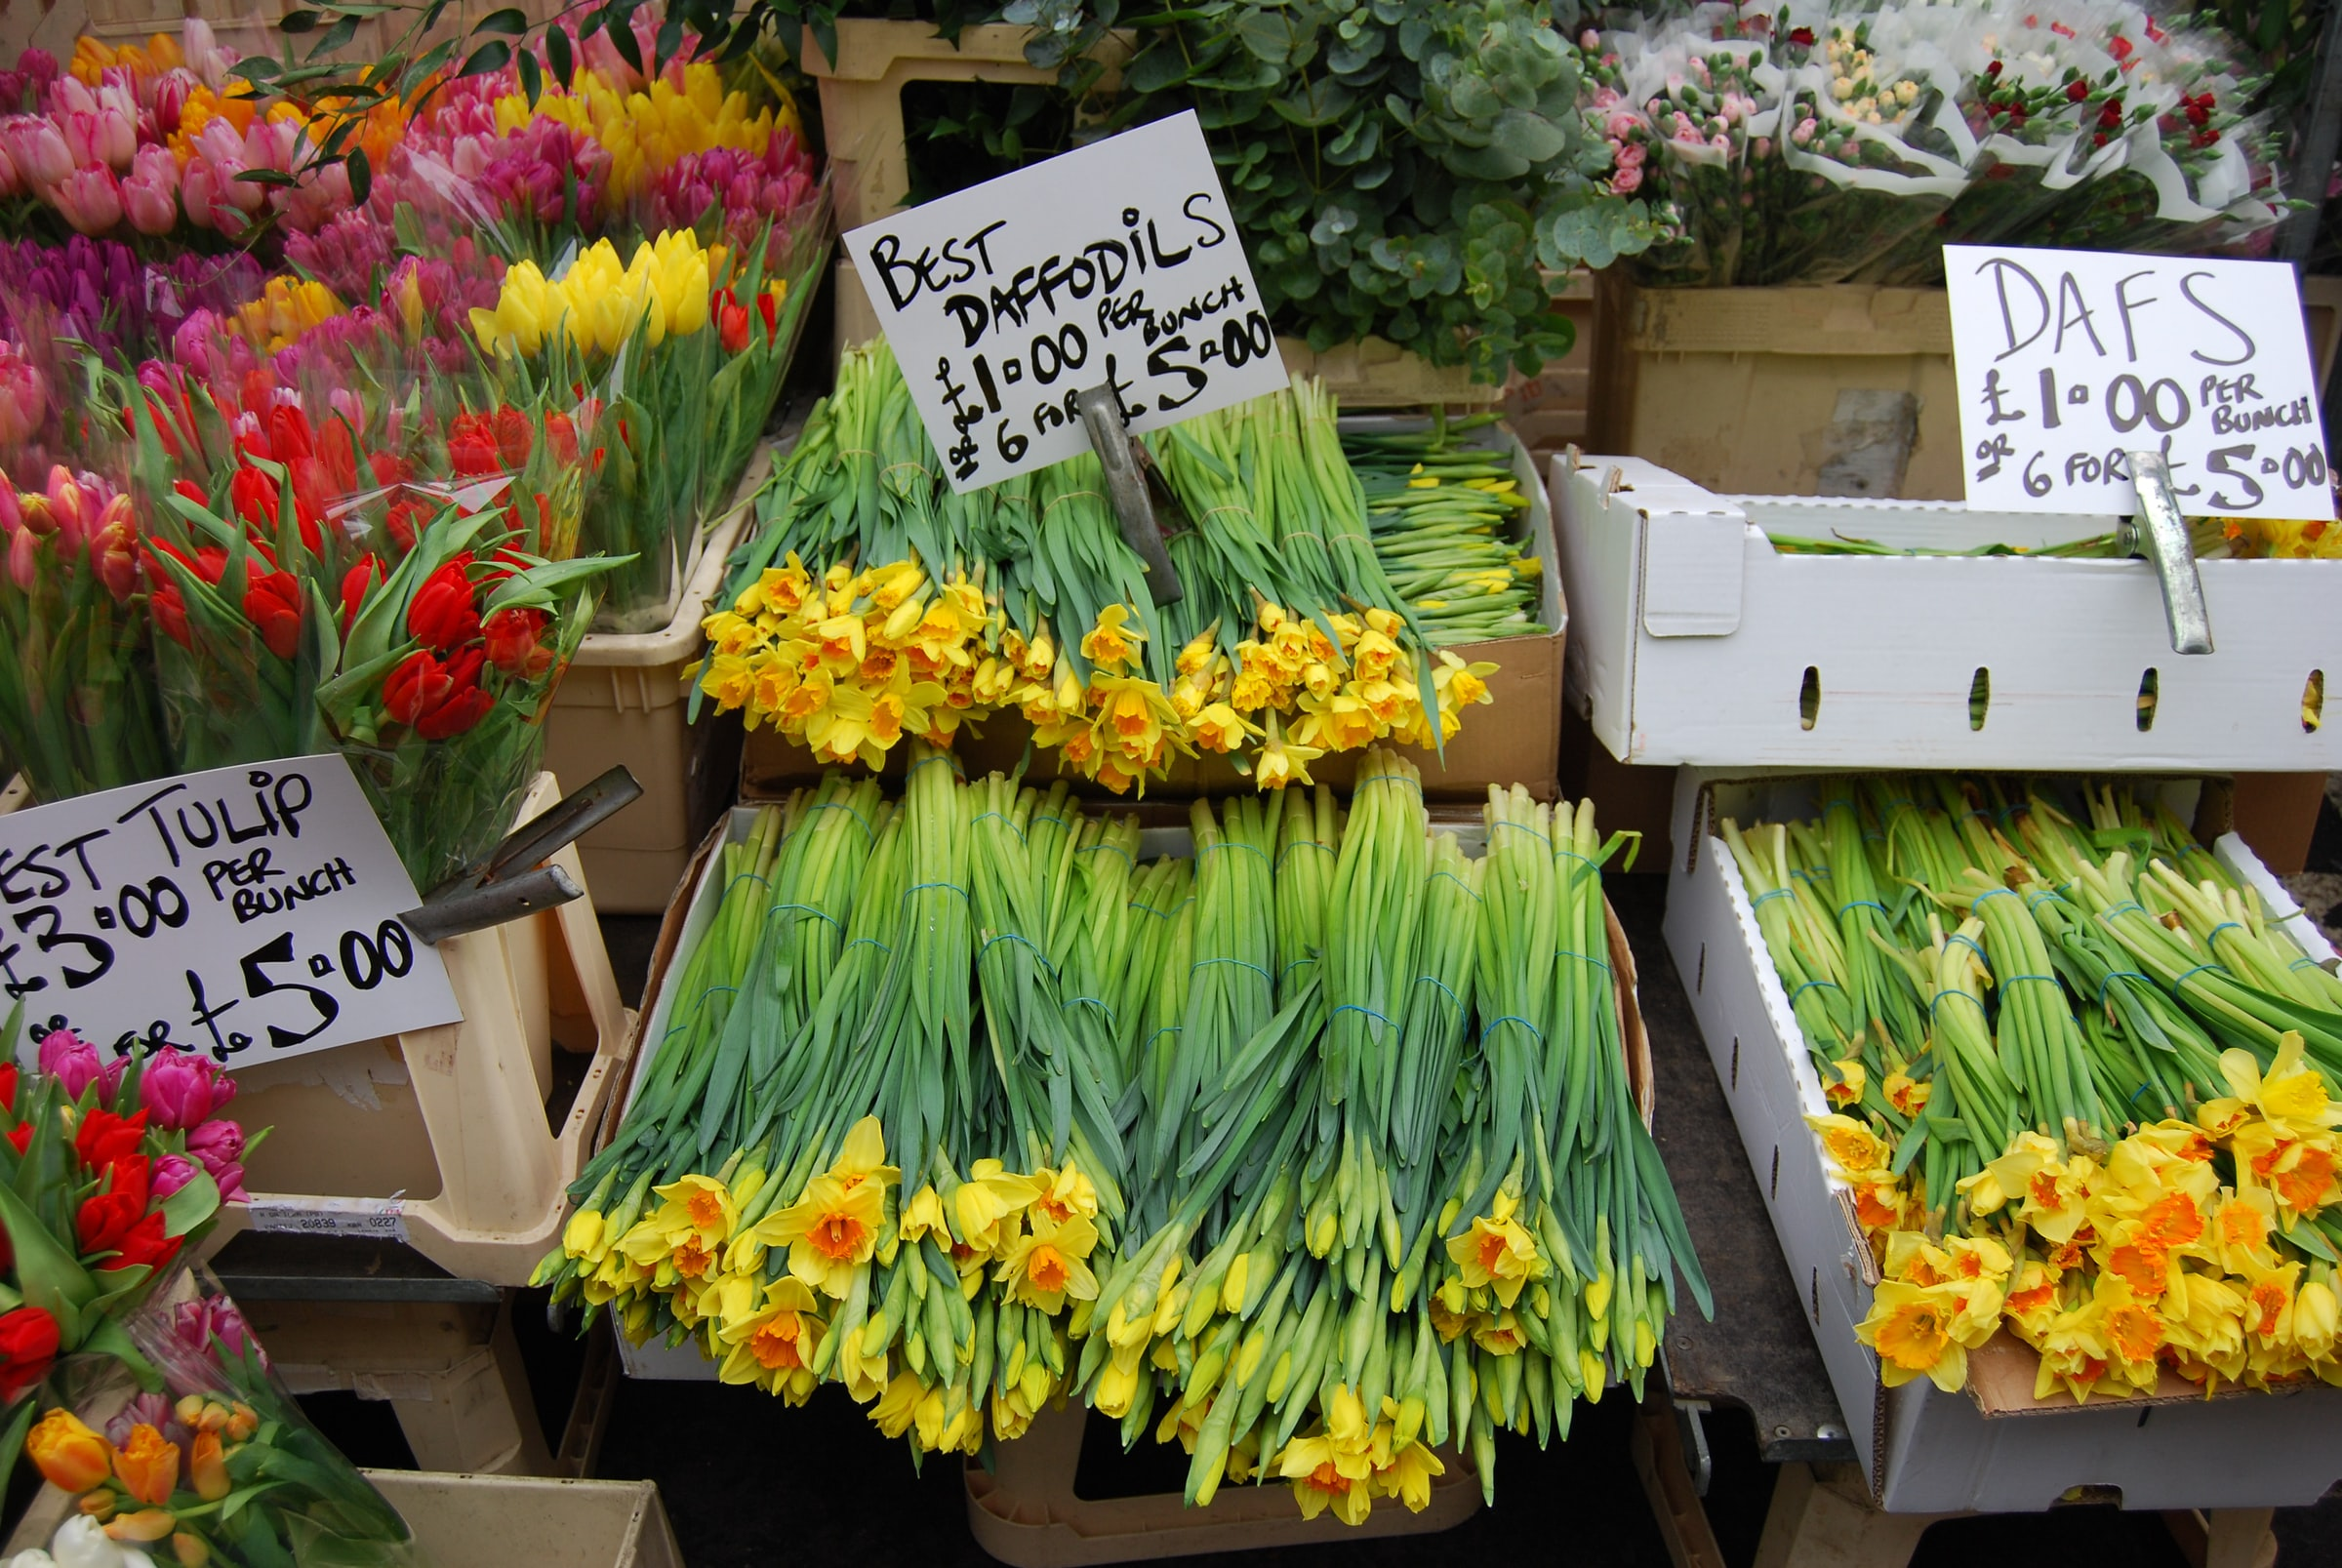 daffodils for sale in a flower shop